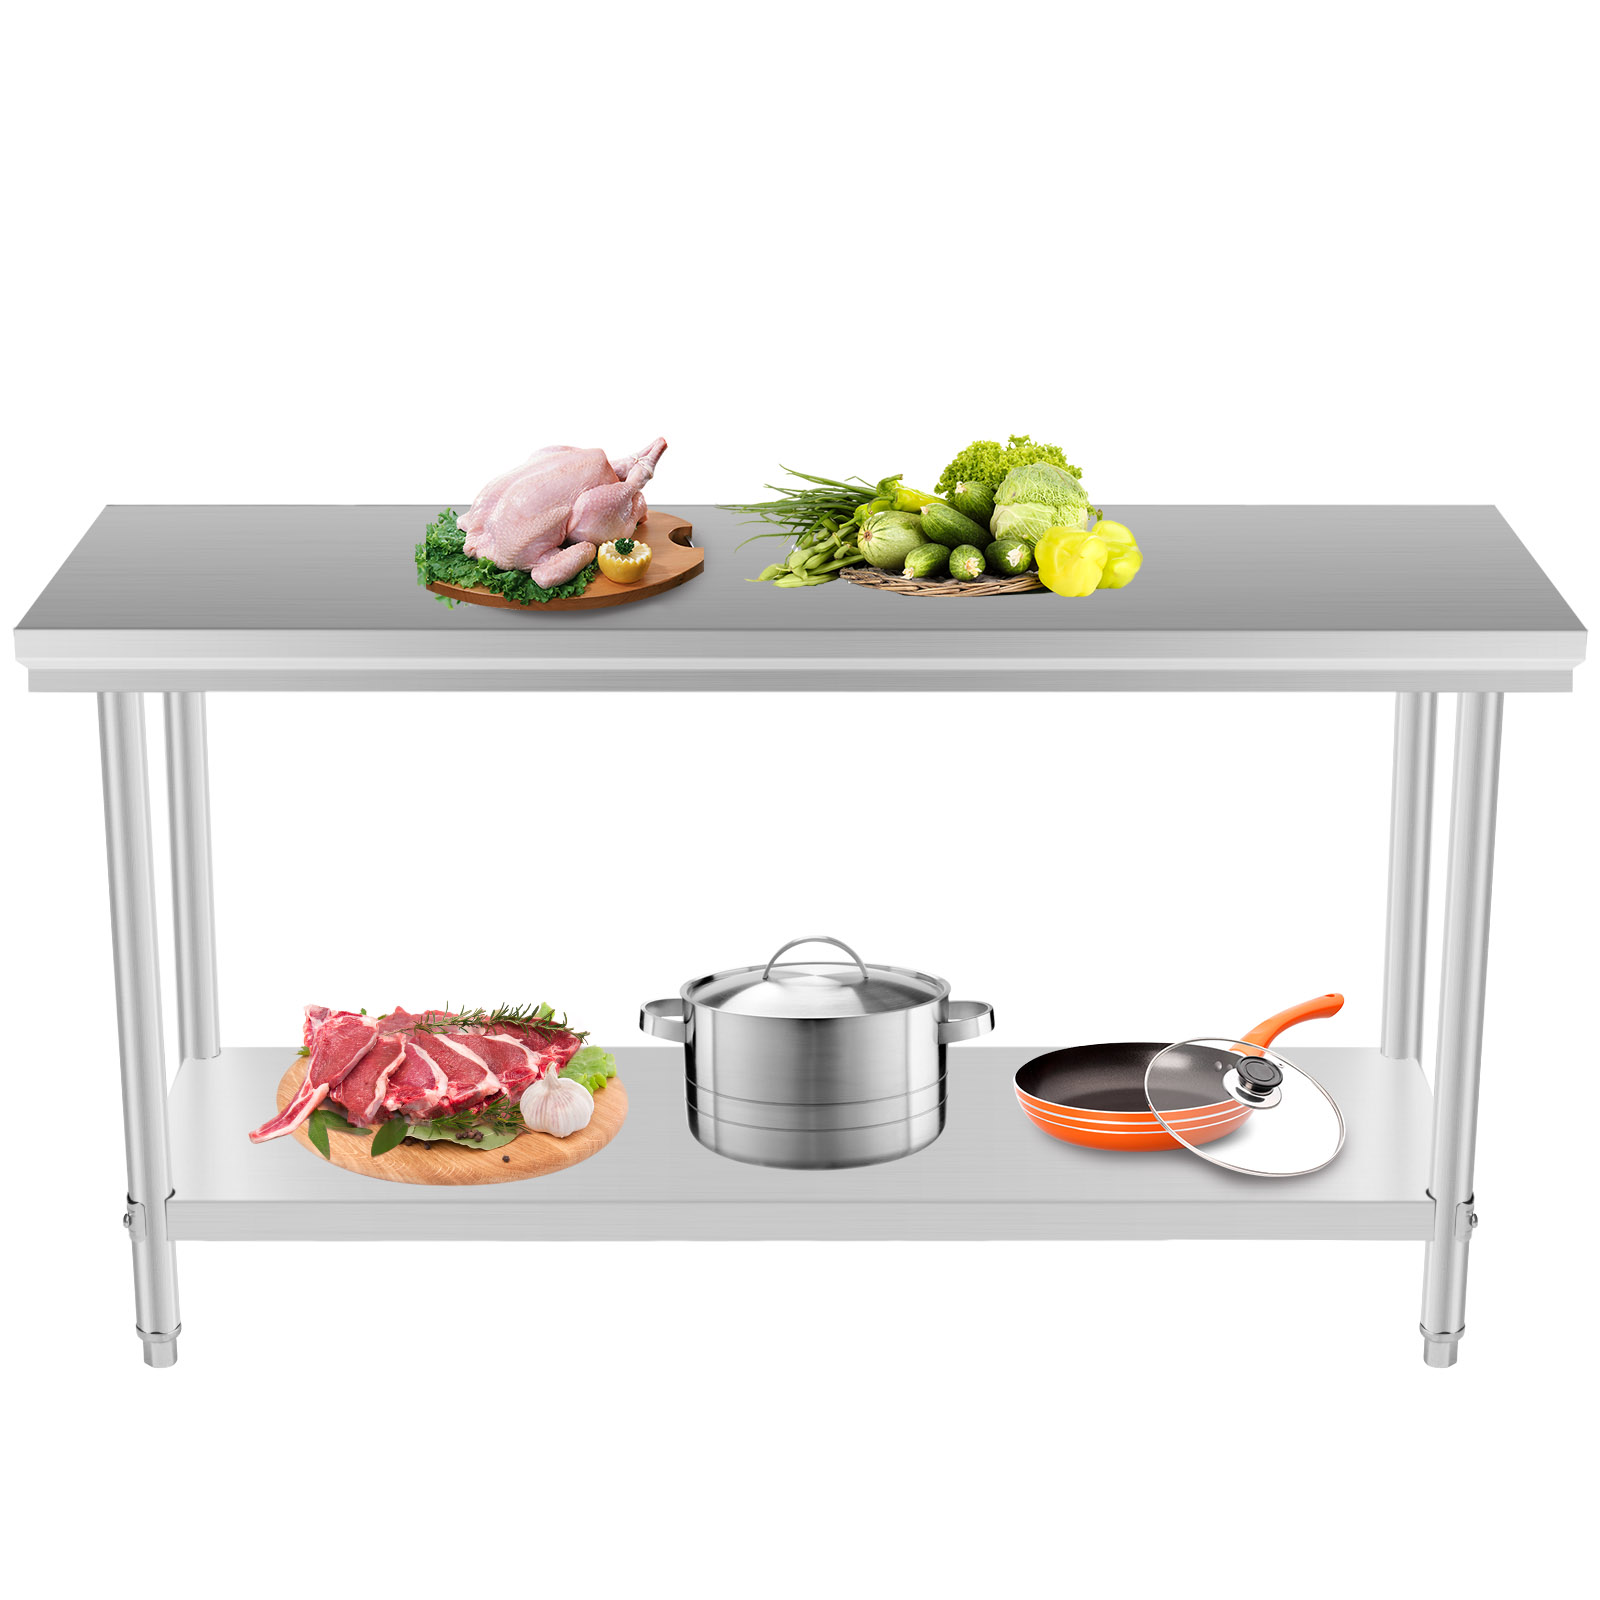 new commercial stainless steel kitchen work prep table nsf approved all sizes ebay. Black Bedroom Furniture Sets. Home Design Ideas